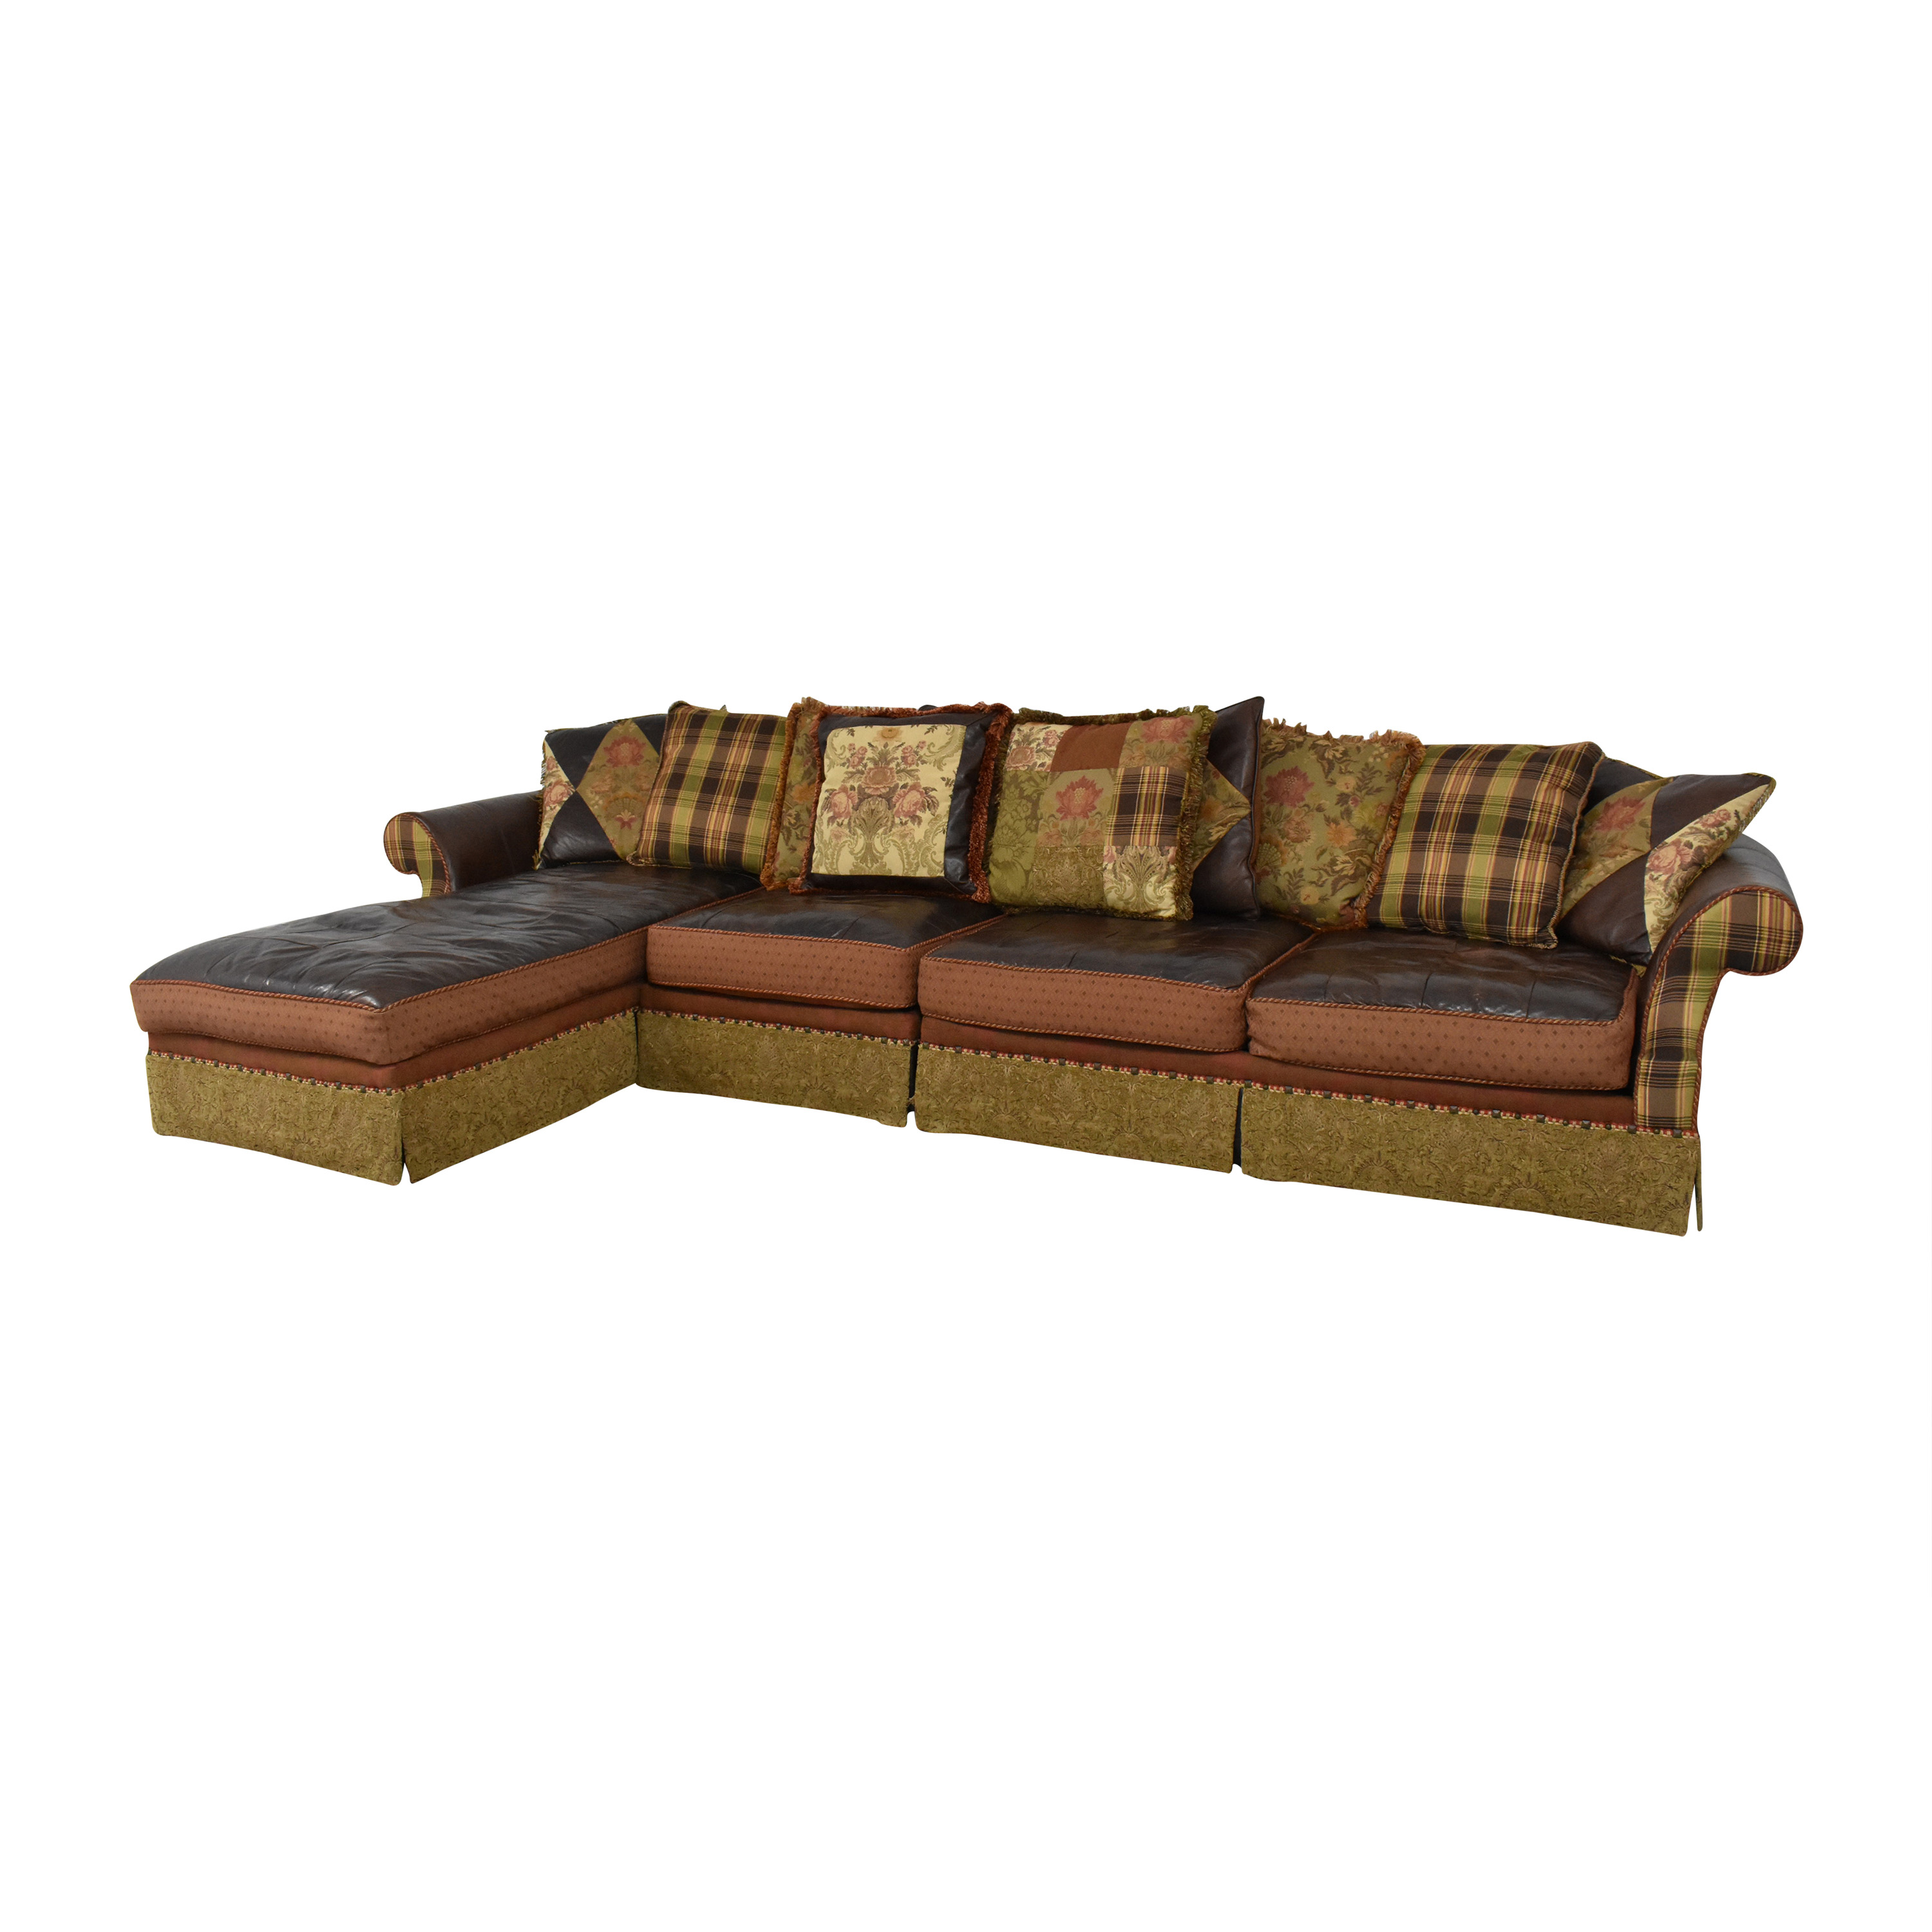 Key City Furniture Key City Jeff Zimmerman Collection Mixed Media Sectional